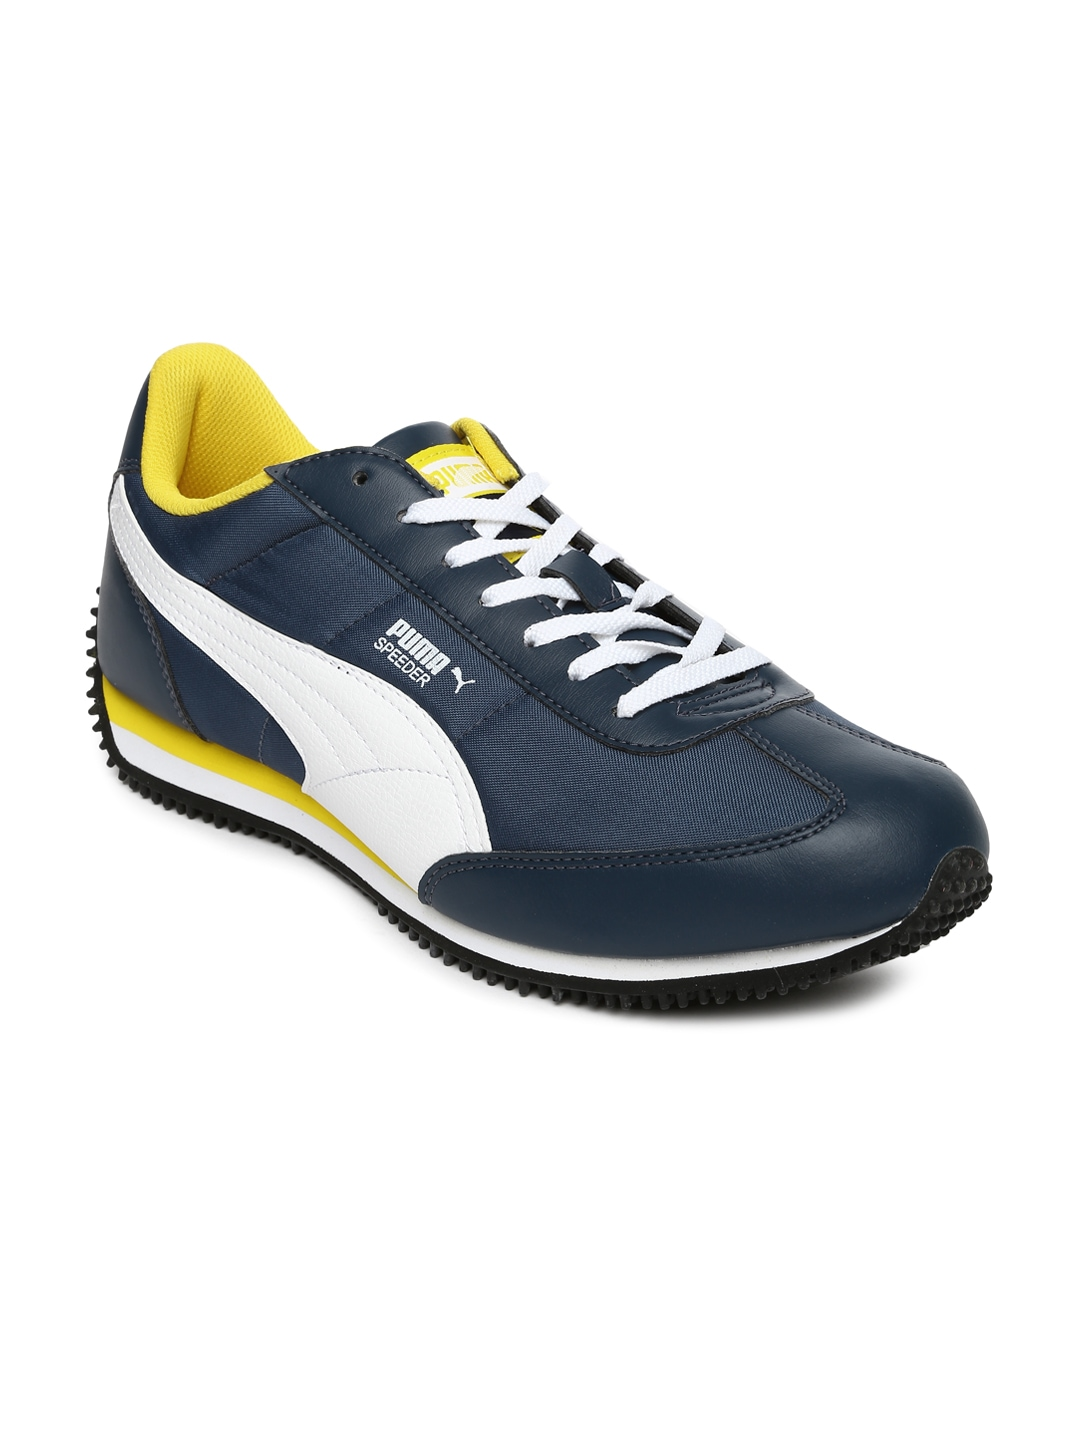 myntra puma men blue speeder tetron ii casual shoes 716042